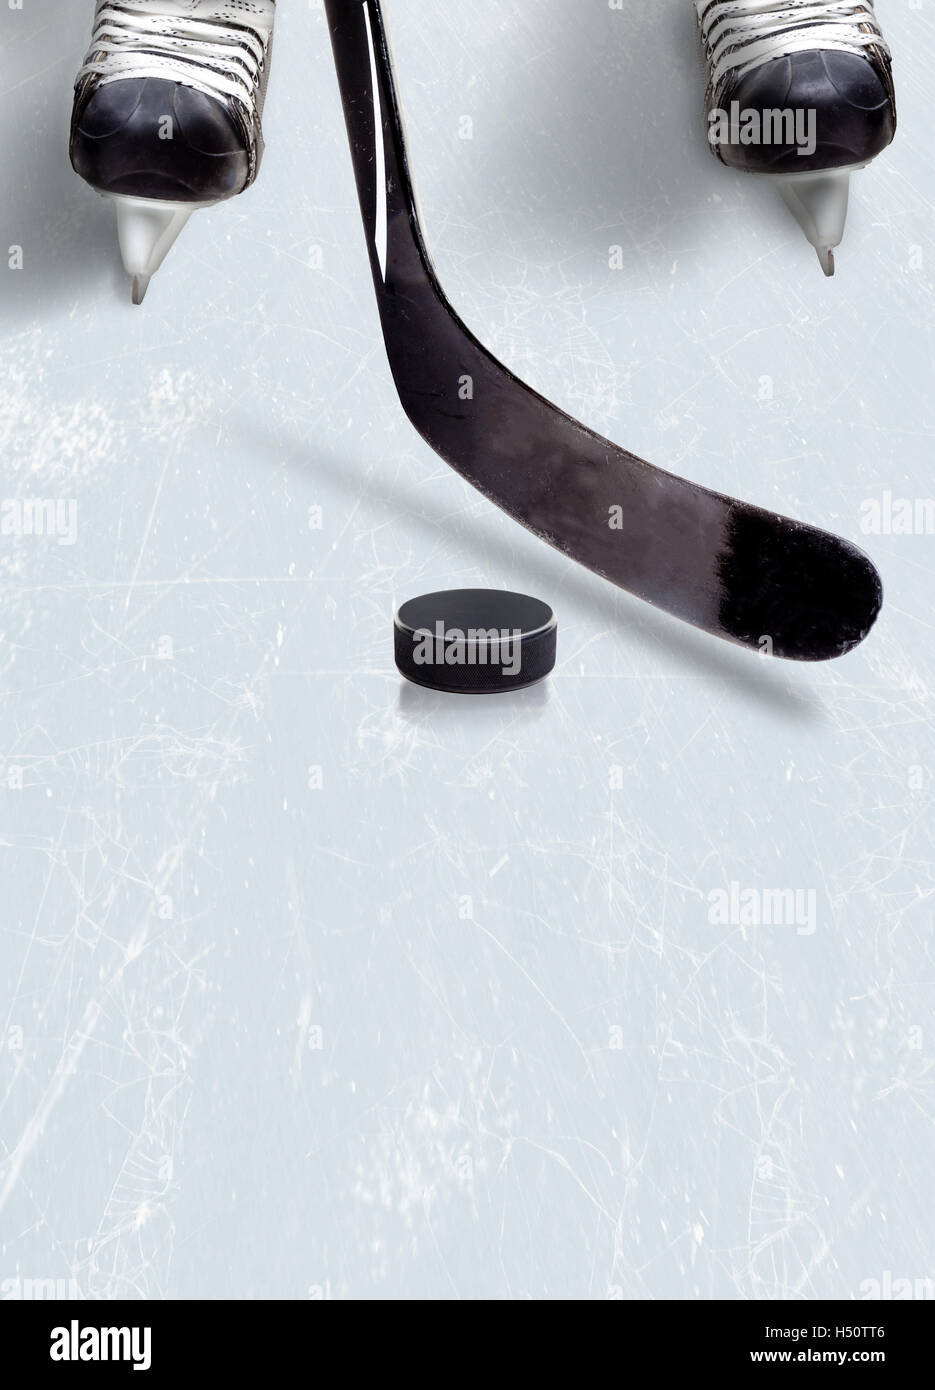 Hockey stick and puck on ice with a player's skates showing partically and copy space. Vertical orientation. - Stock Image